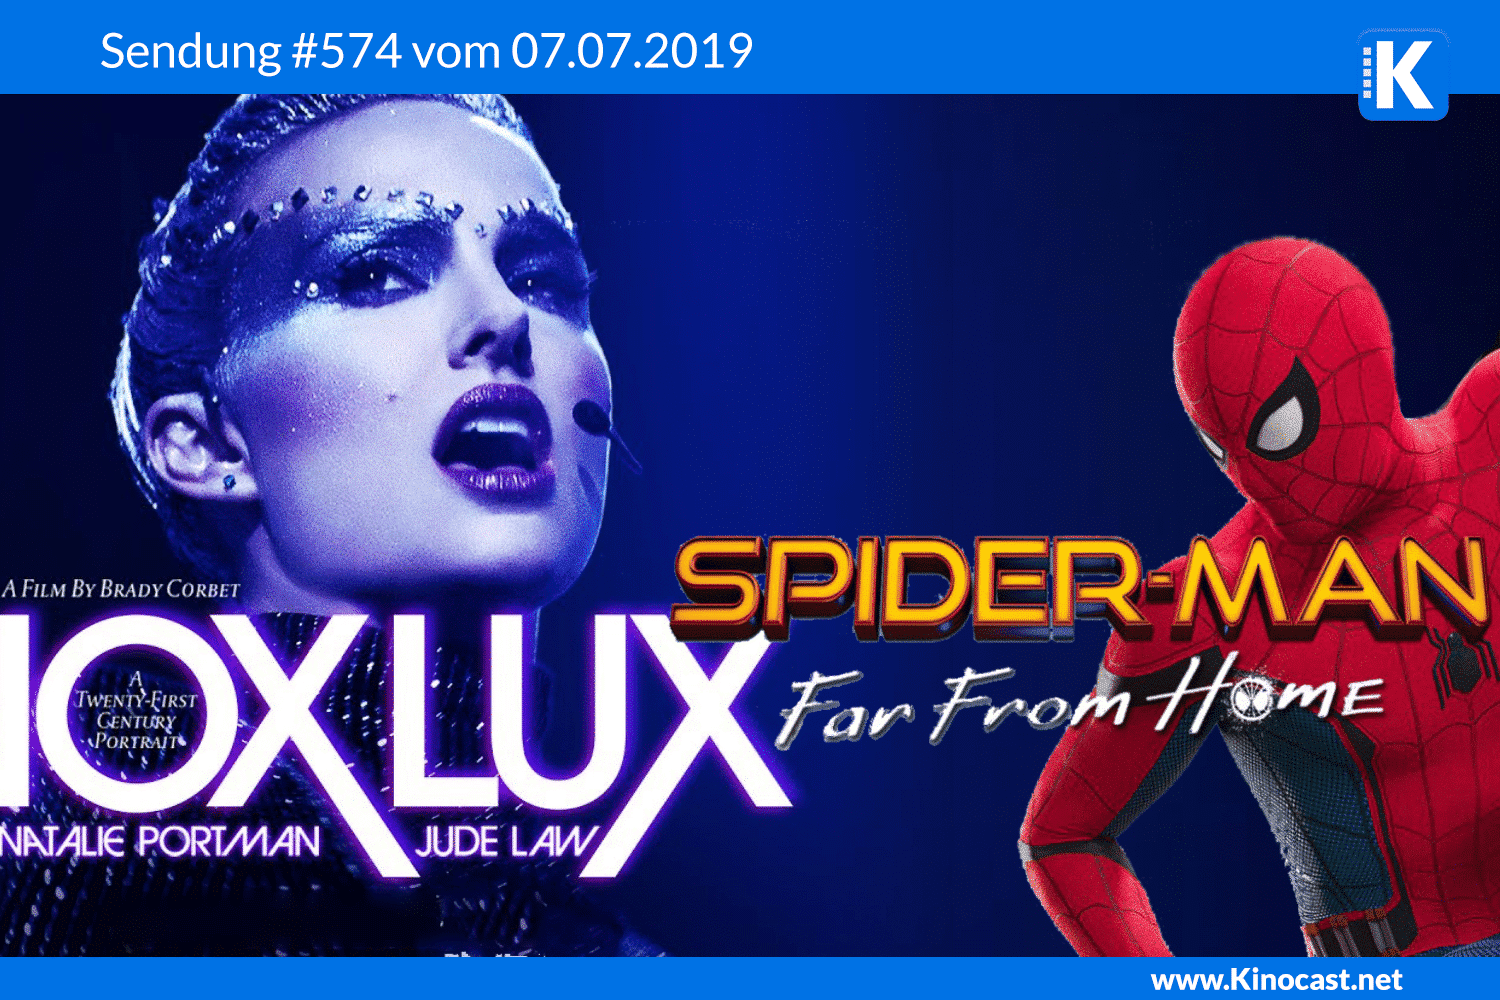 Vox Lux Spiderman far from home Sneak Preview Download film german deutsch